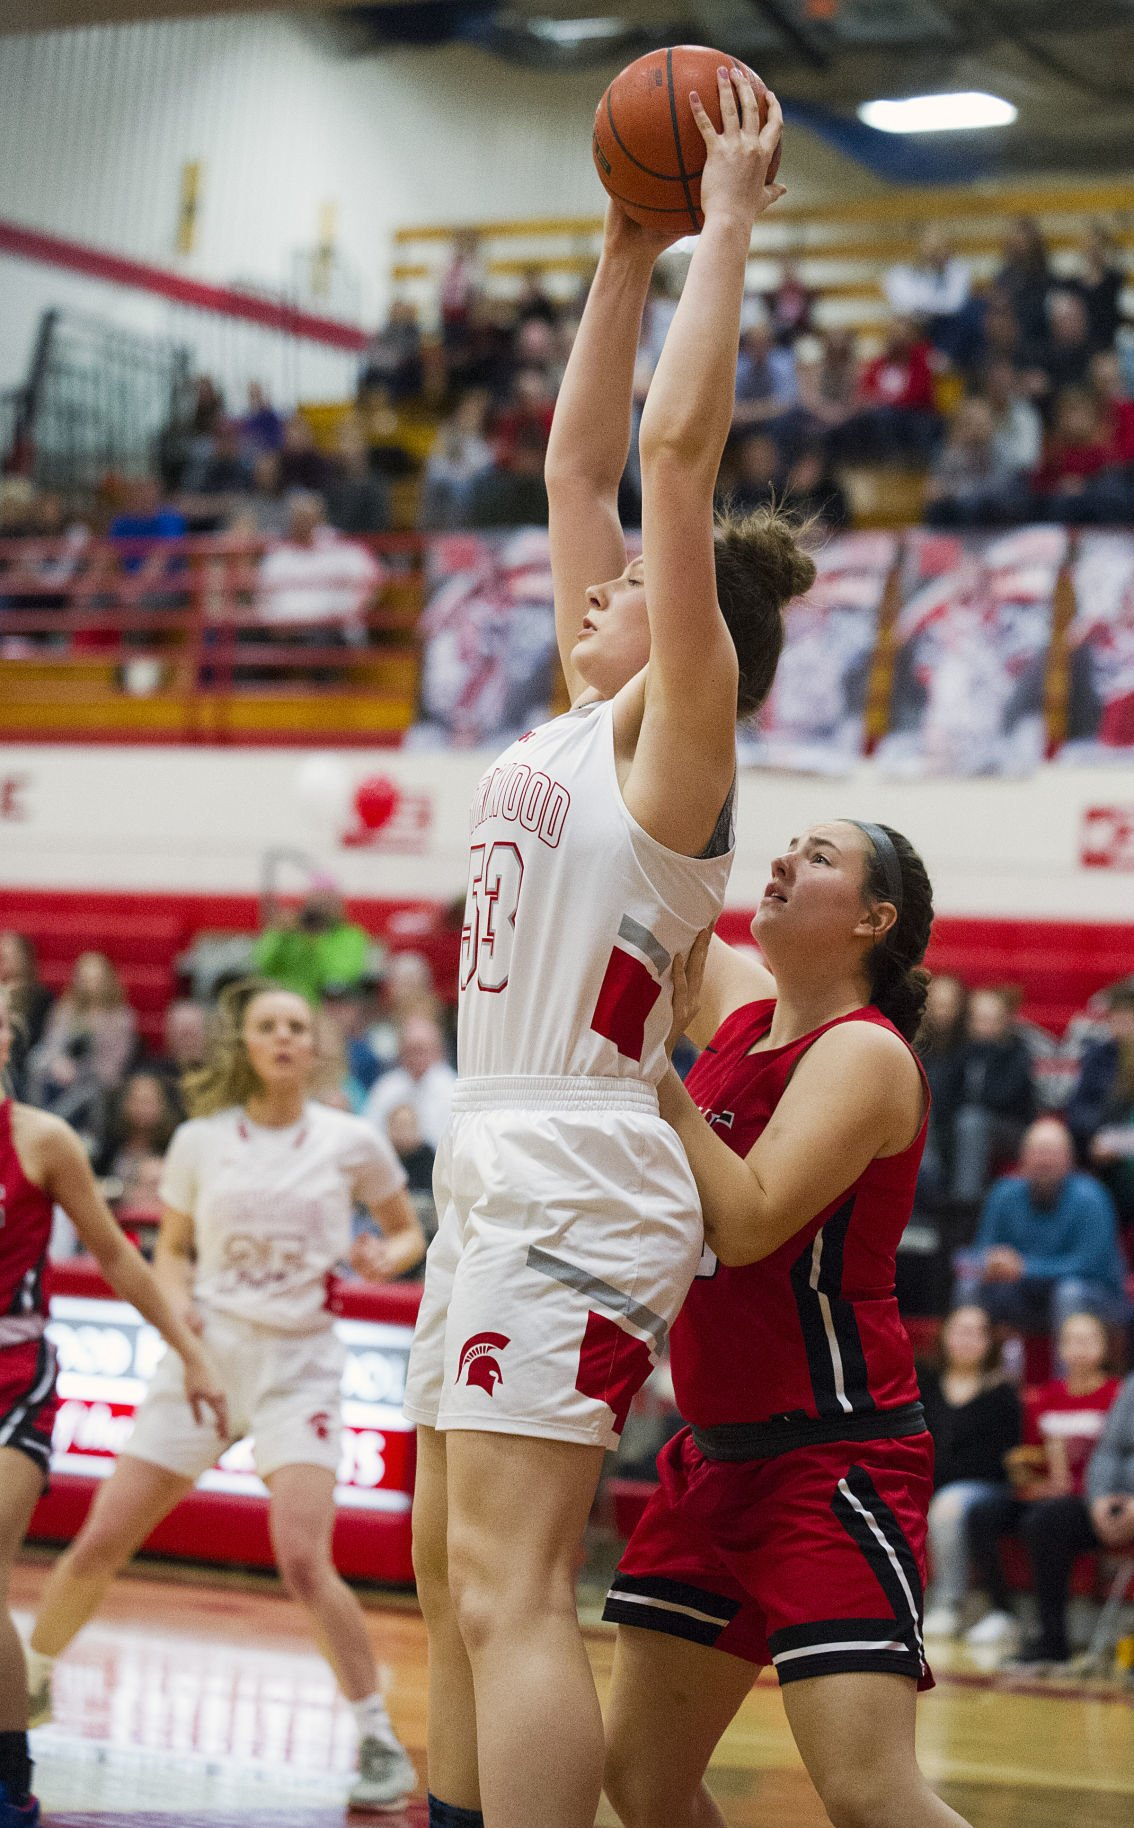 Girls Basketball: Marysville-Pilchuck at Stanwood, 2.10.20